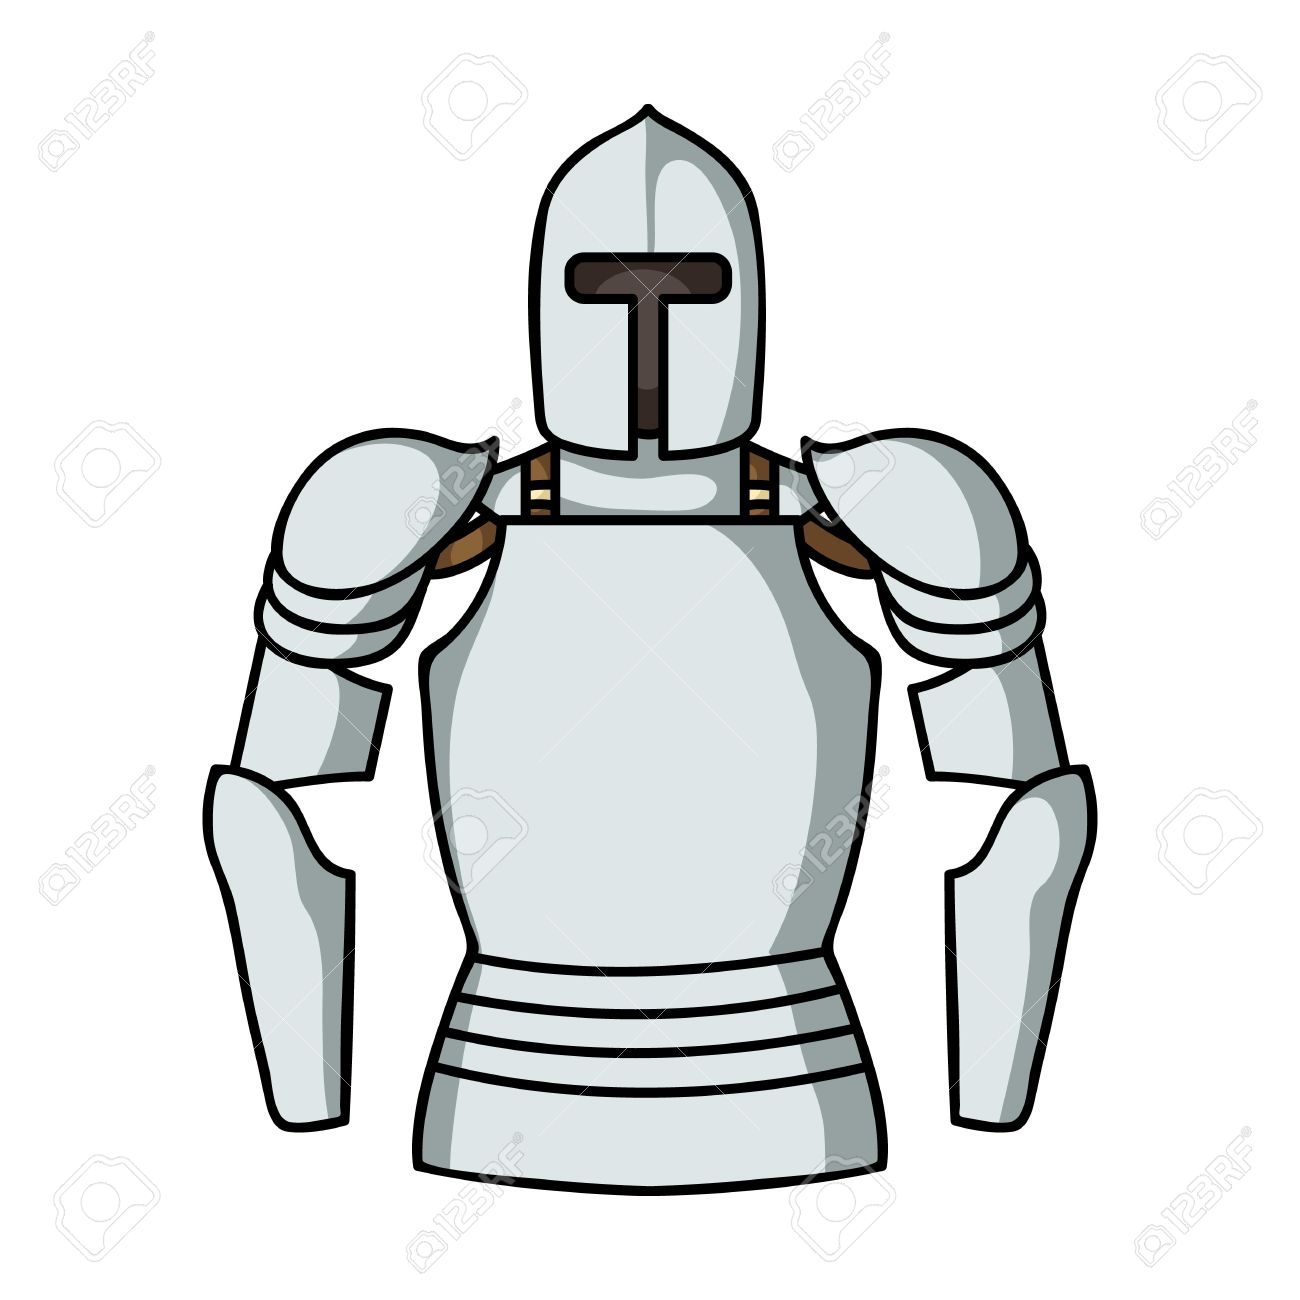 Plate Armor Icon In Cartoon Style Isolated On White Background.